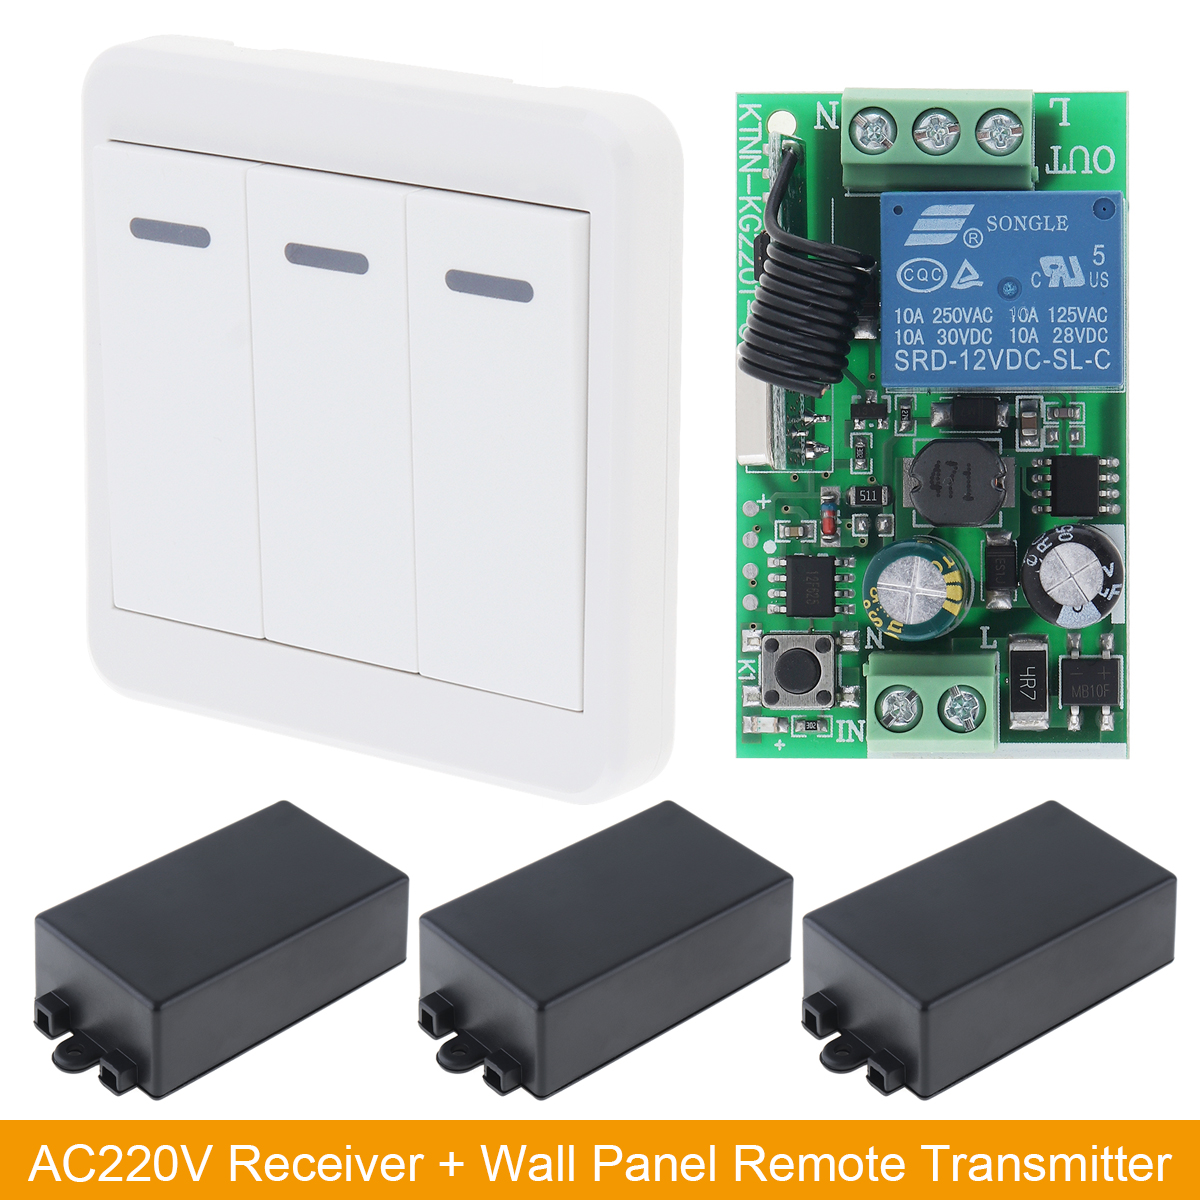 New Wireless AC 220V Remote Control Switch Receiver Wall Panel Remote Transmitter for Lamp Switch and Lighting Device Control